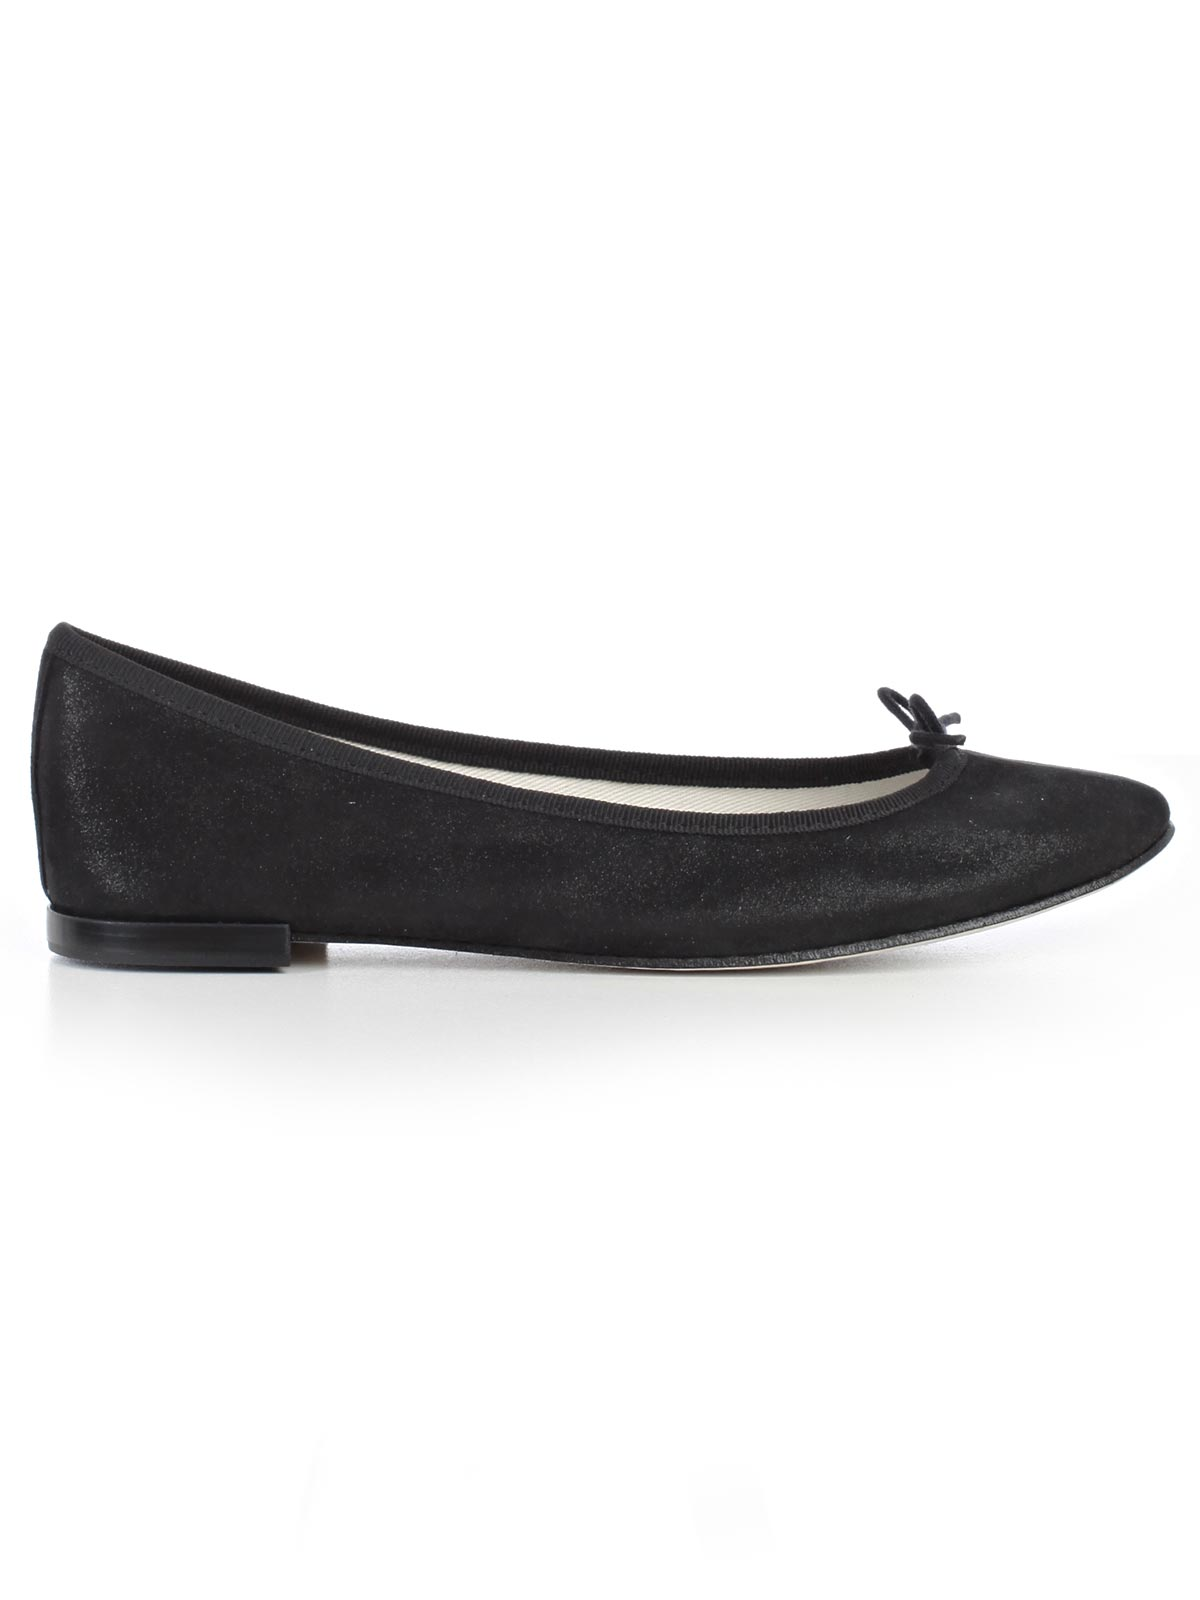 Picture of REPETTO FOOTWEAR CENDRILLON BALLERINA SUEDE